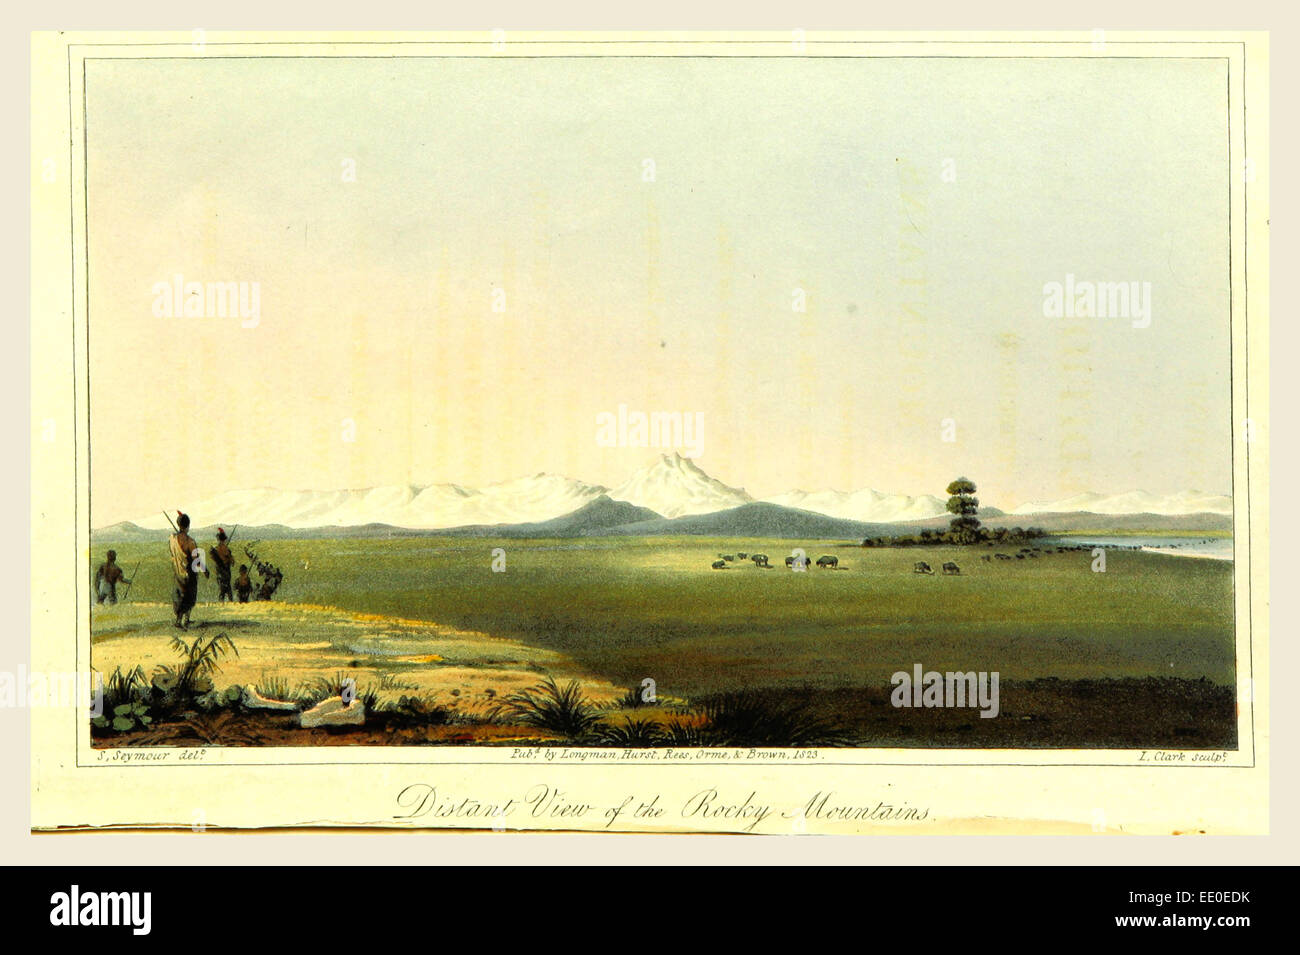 View of the Rocky Mountains, 1823 - Stock Image